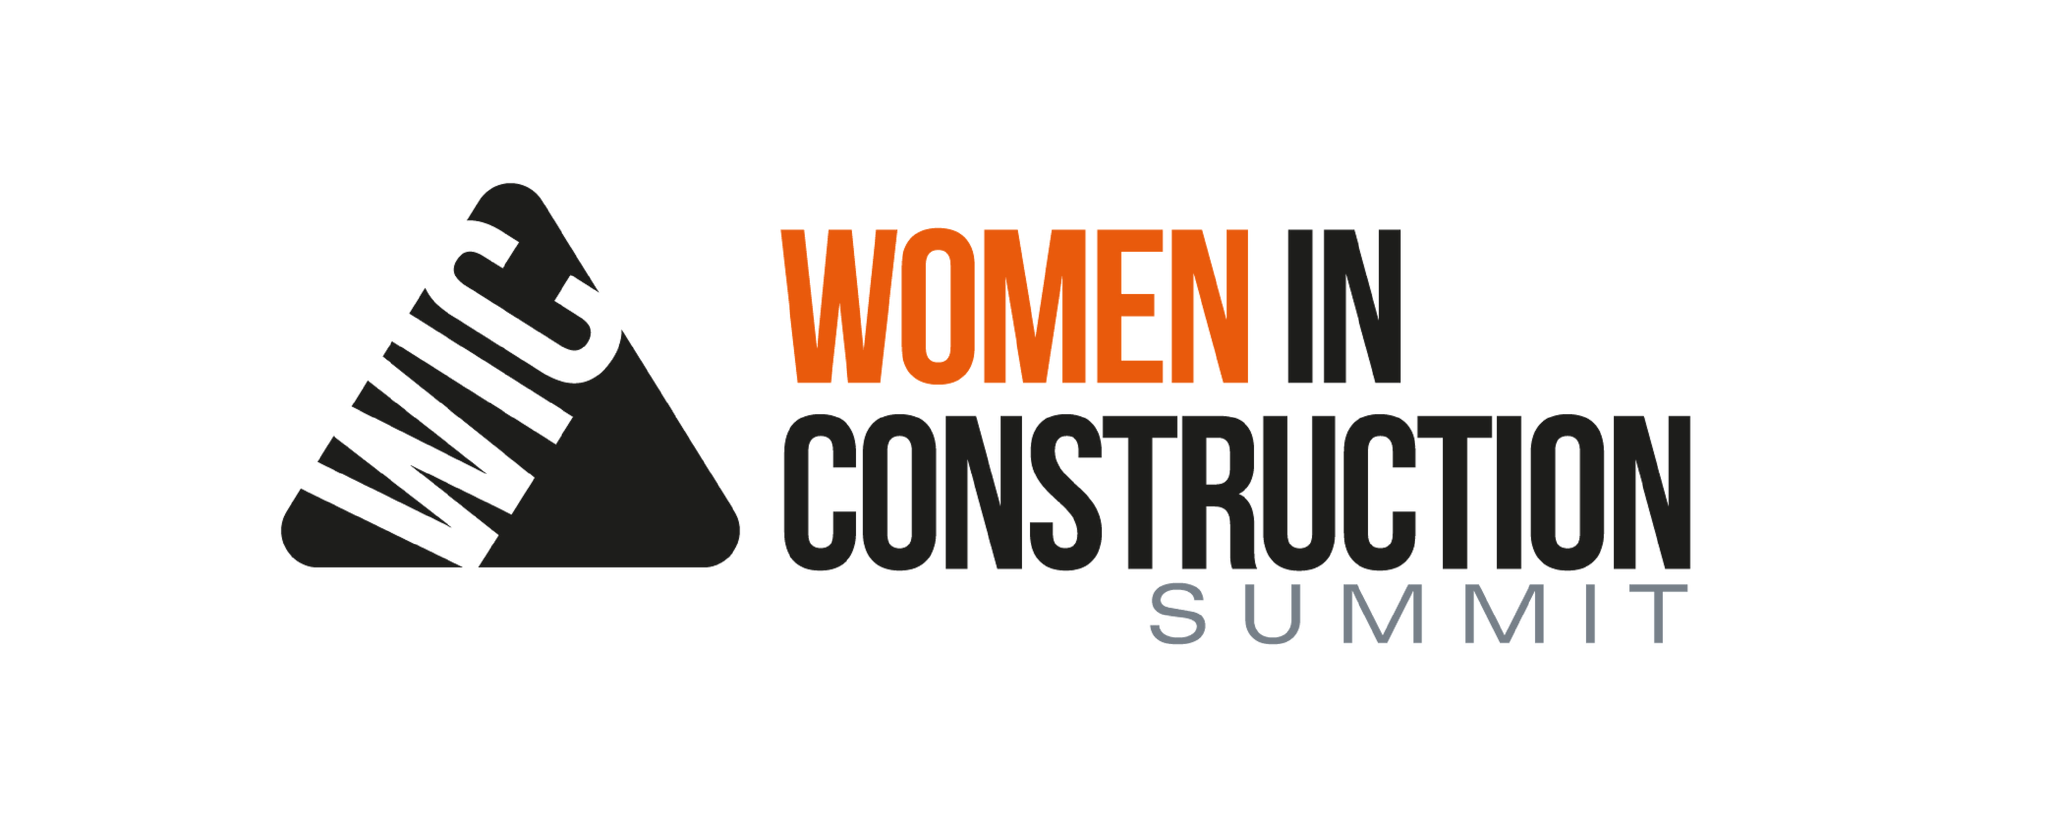 WOMEN IN CONSTRUCTION SUMMIT